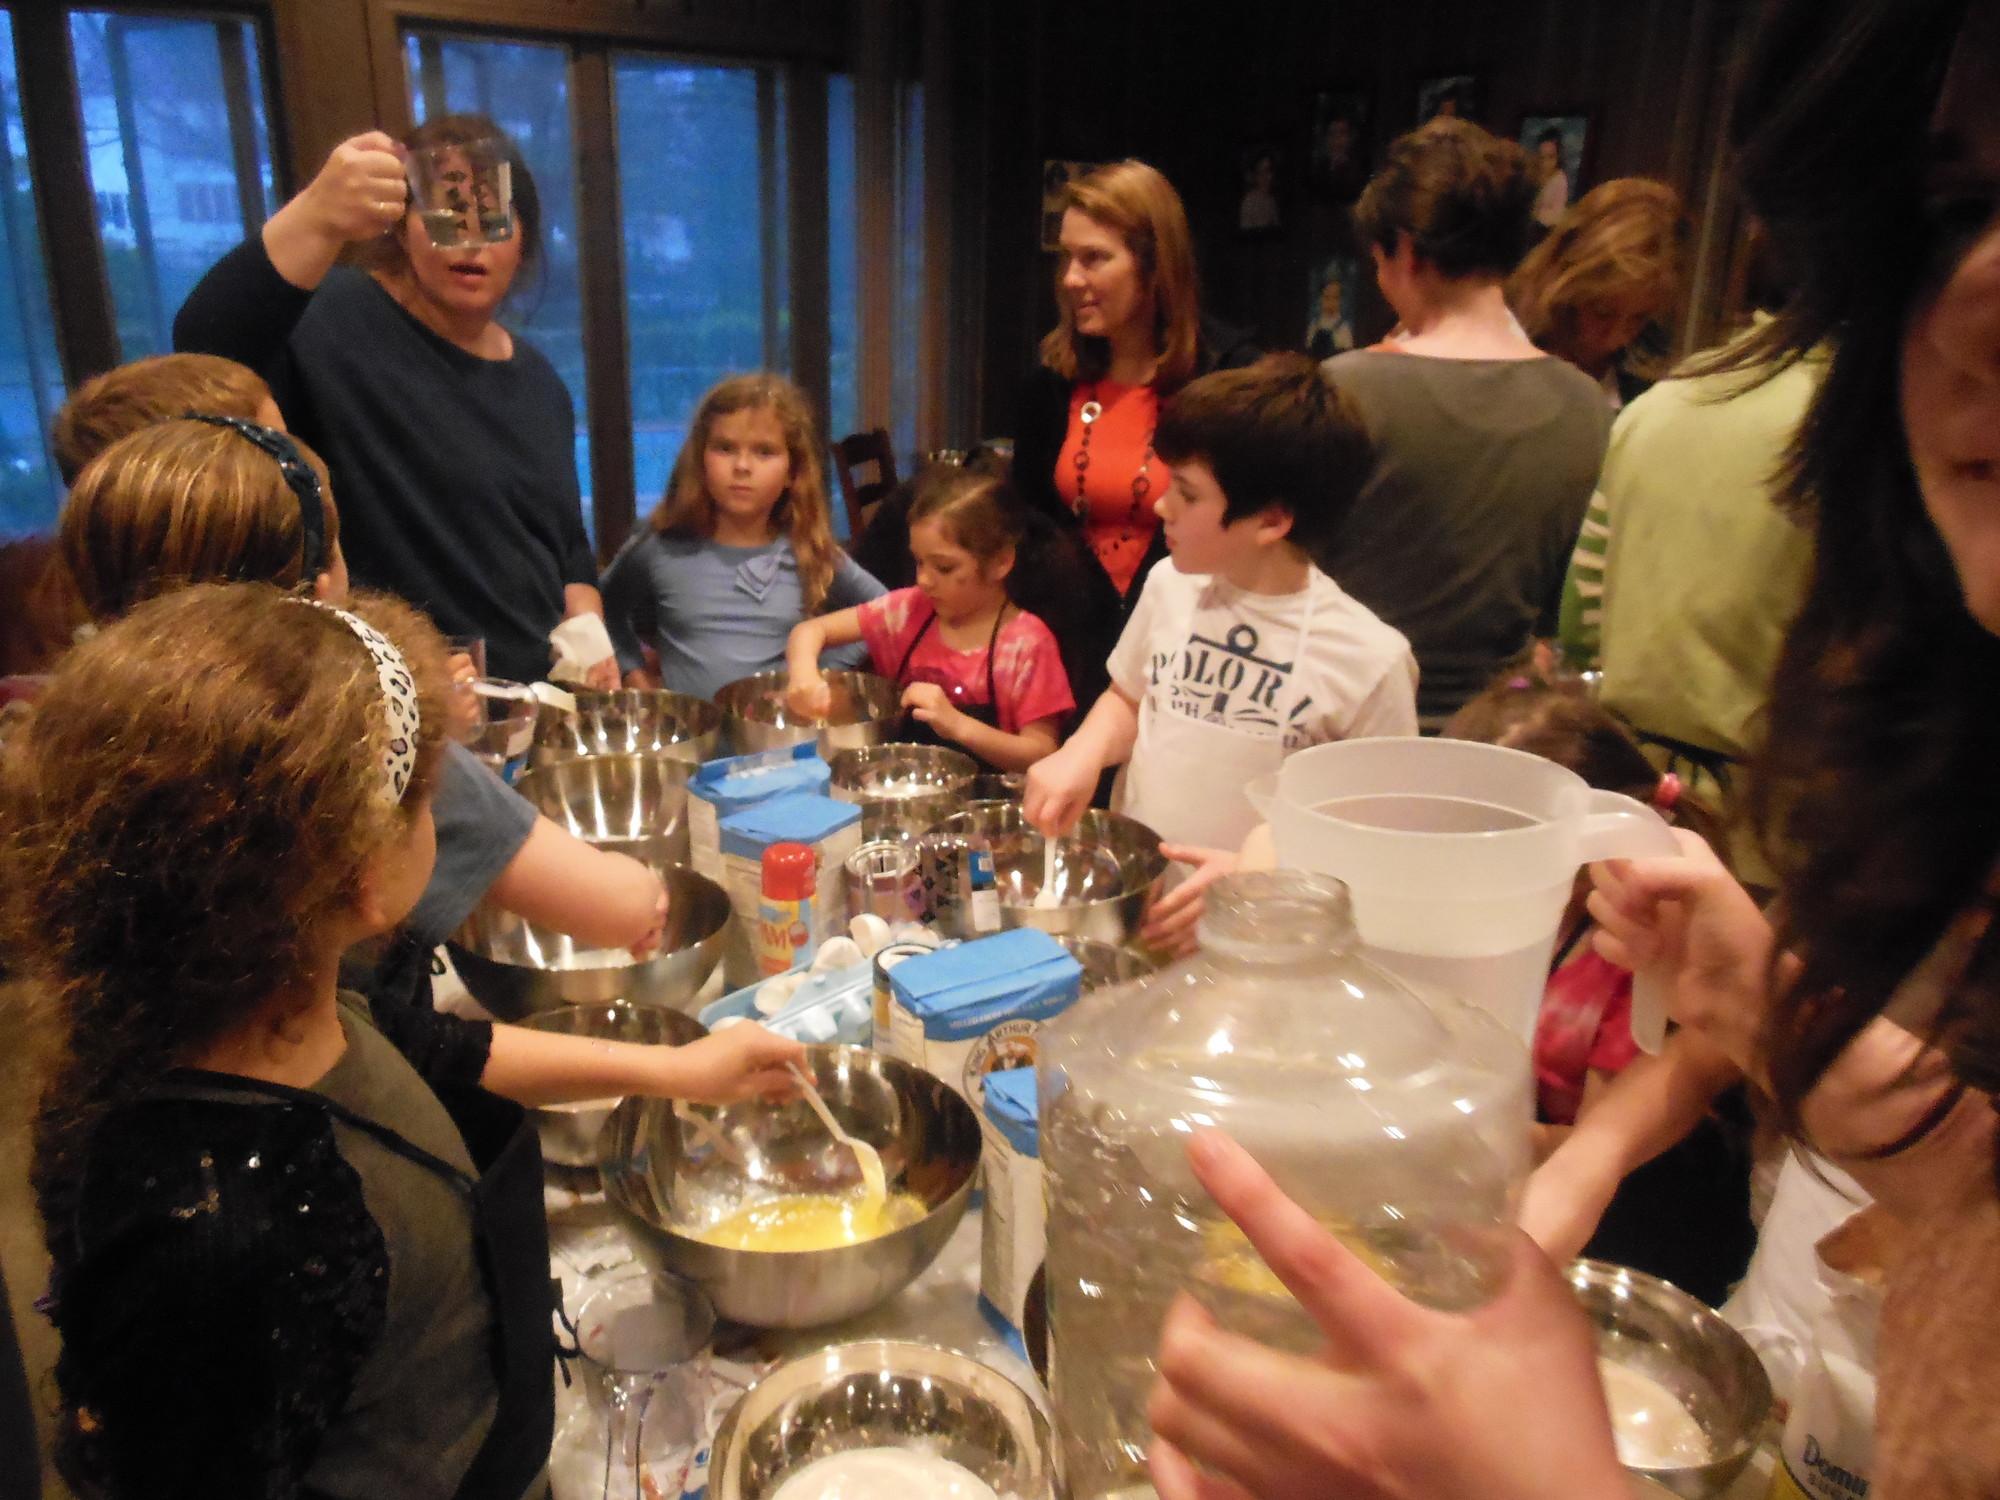 Chabad of Hewlett's Jewish Women's Circle held a challah baking workshop and discussed the important role women play in maintaining Jewish traditions.